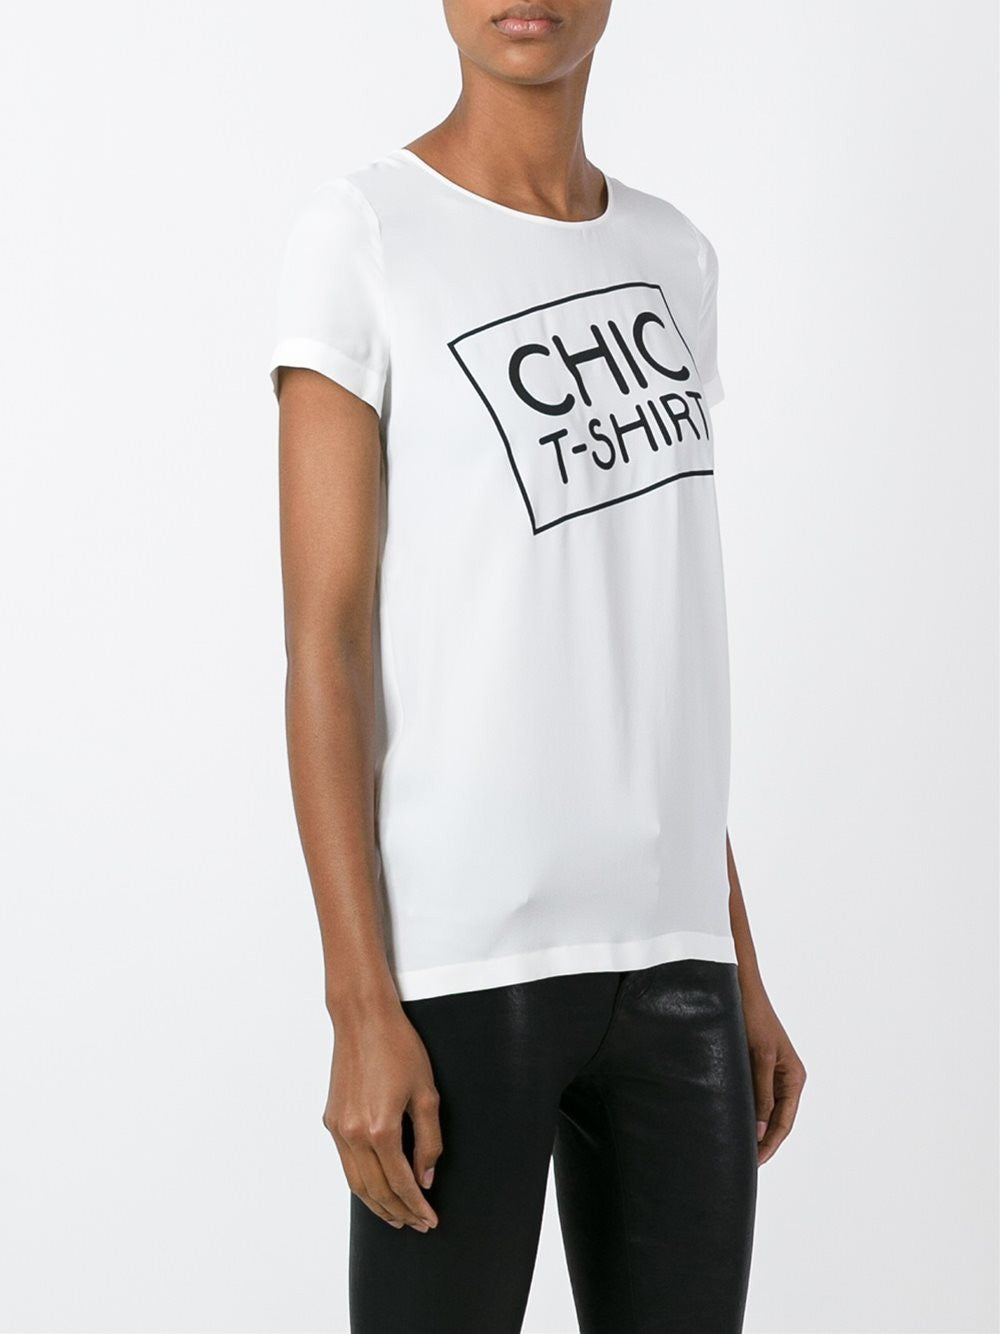 Chic Silk T-Shirt | 0224-5837